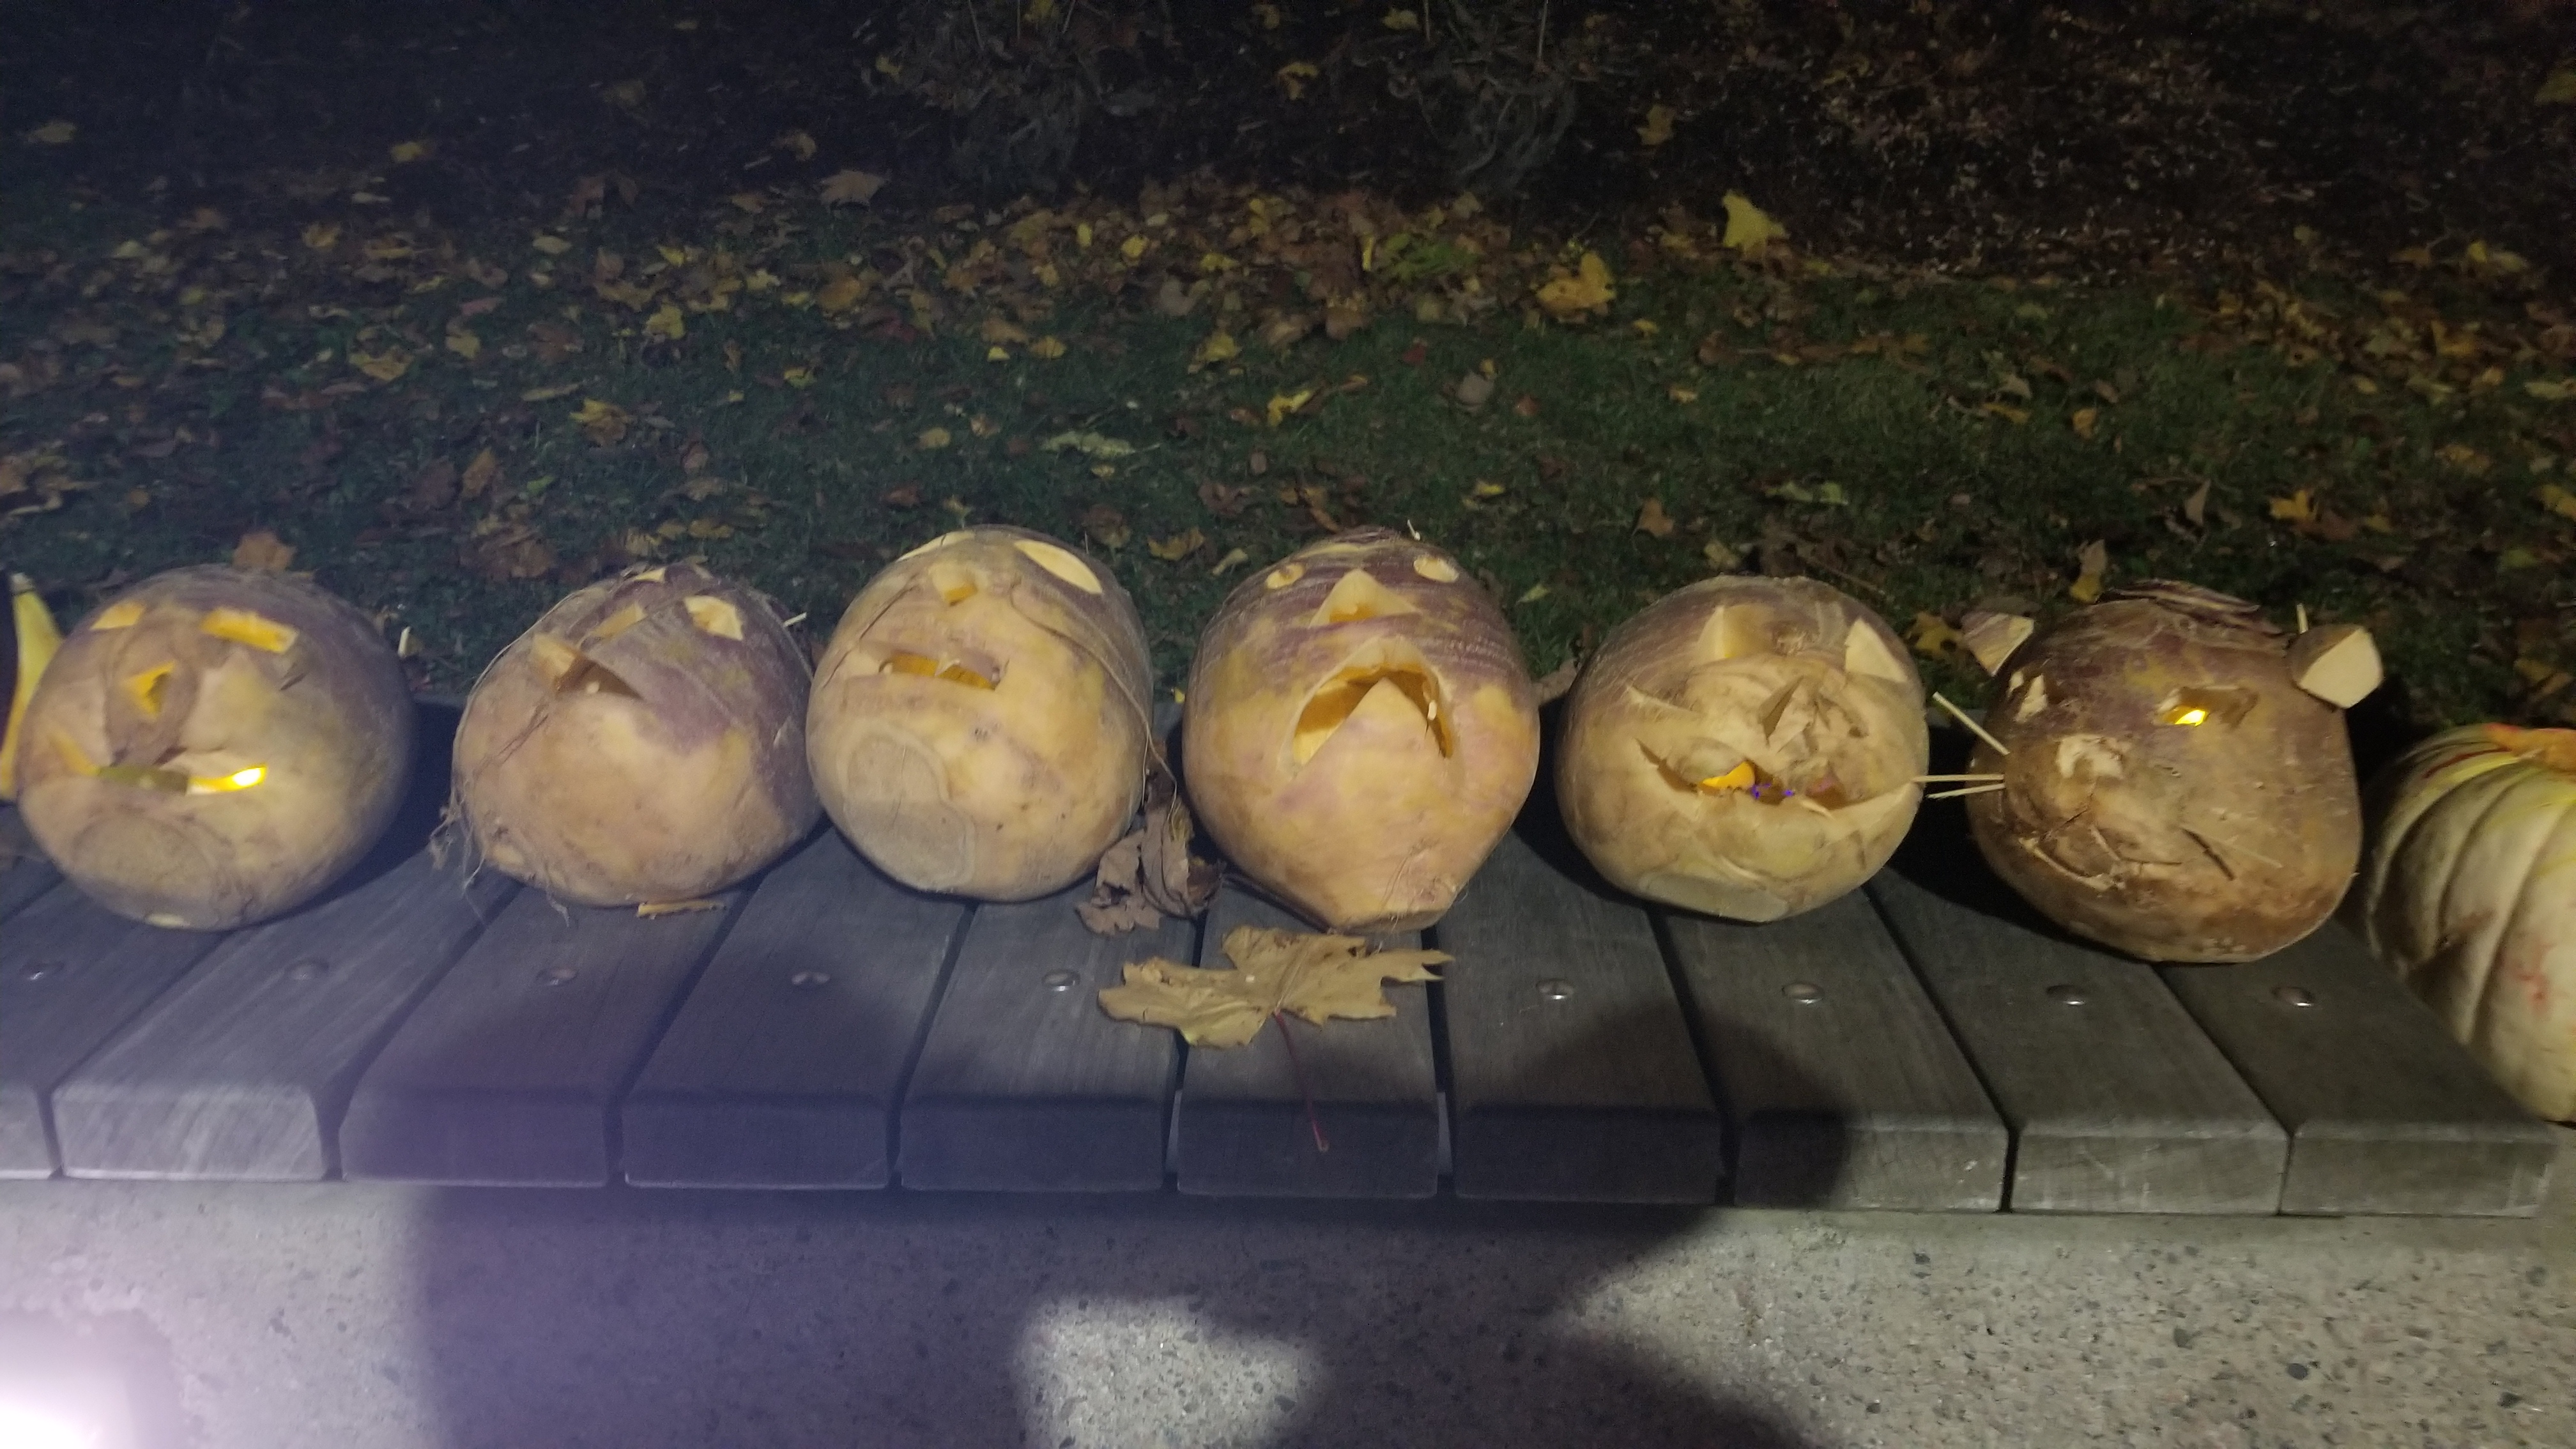 Carved turnips at the annual Pumpkin Walk